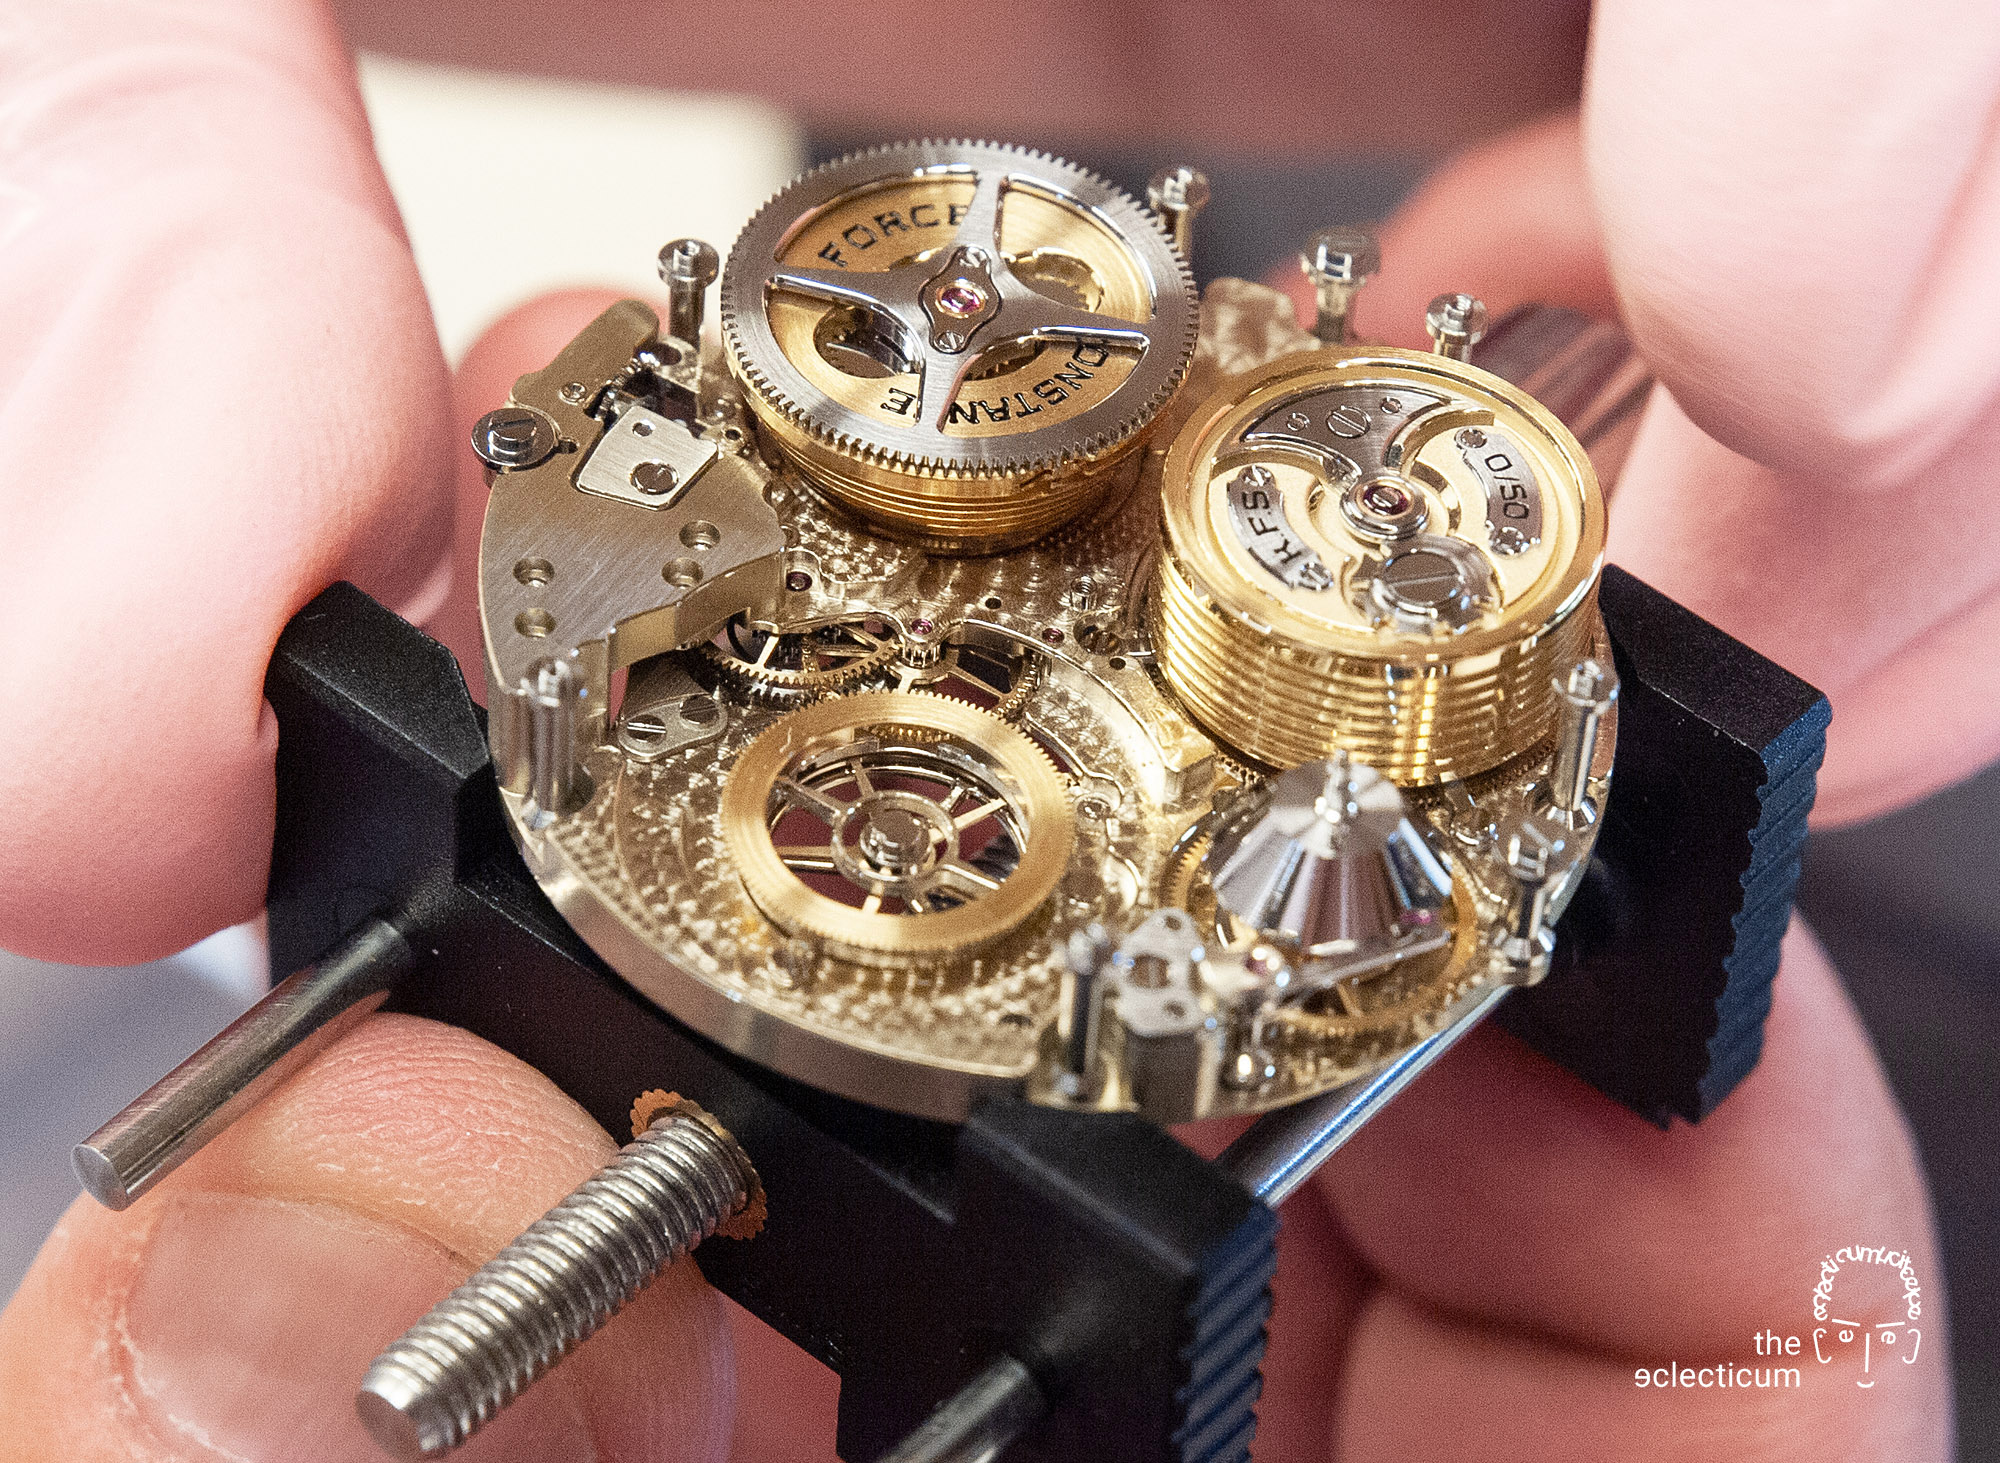 Ferdinand Berthoud Chronometry FB 1R 1L 1 chronometer tourbillon assembly watchmaking movement